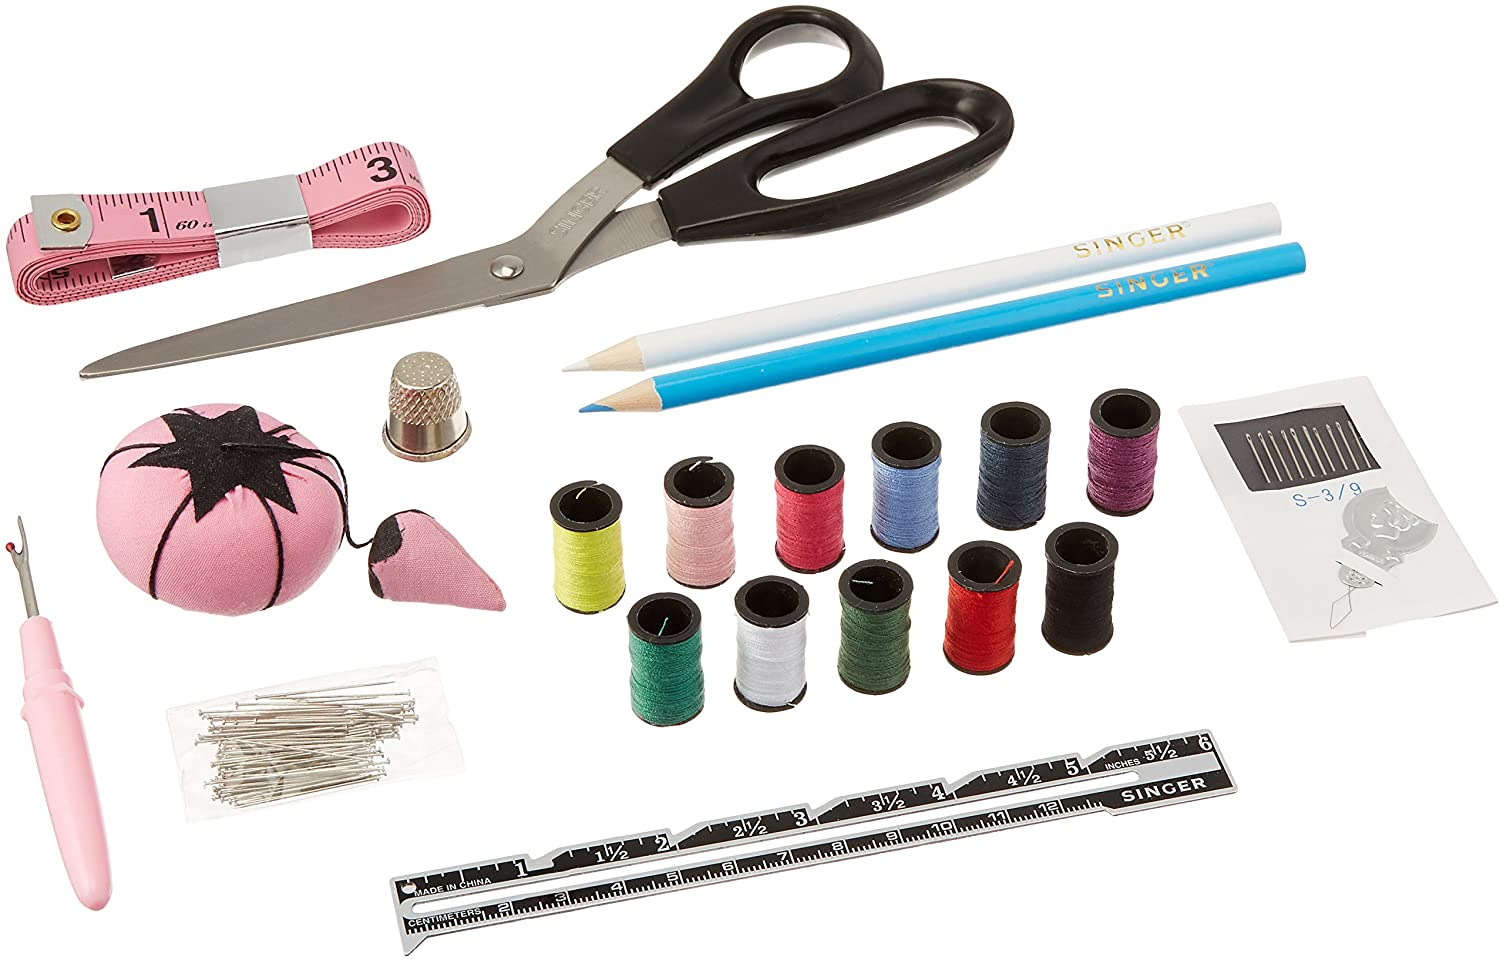 SINGER 01512 Beginners Sewing Kit, 130 pieces